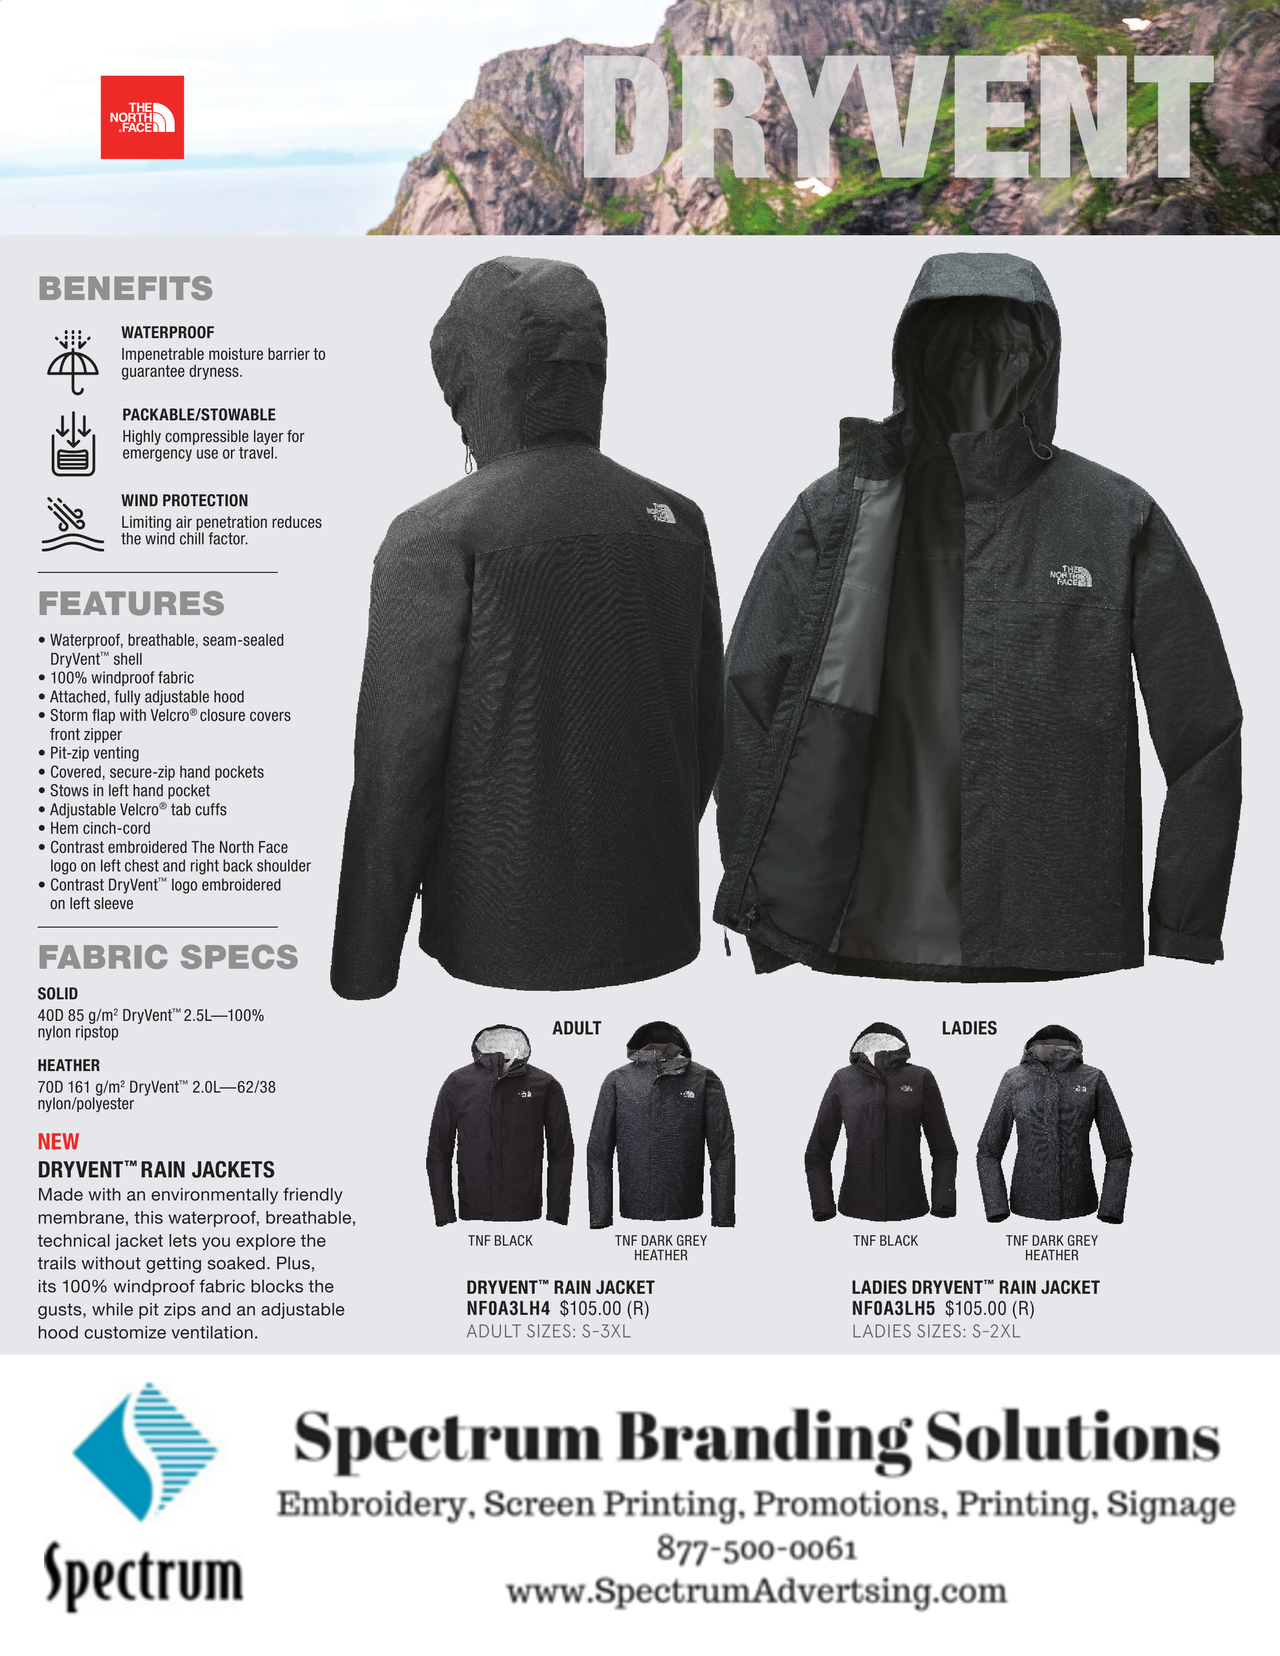 acbfda91d Pin by Spectrum Advertising on Promotional Merchandise | Waterproof ...